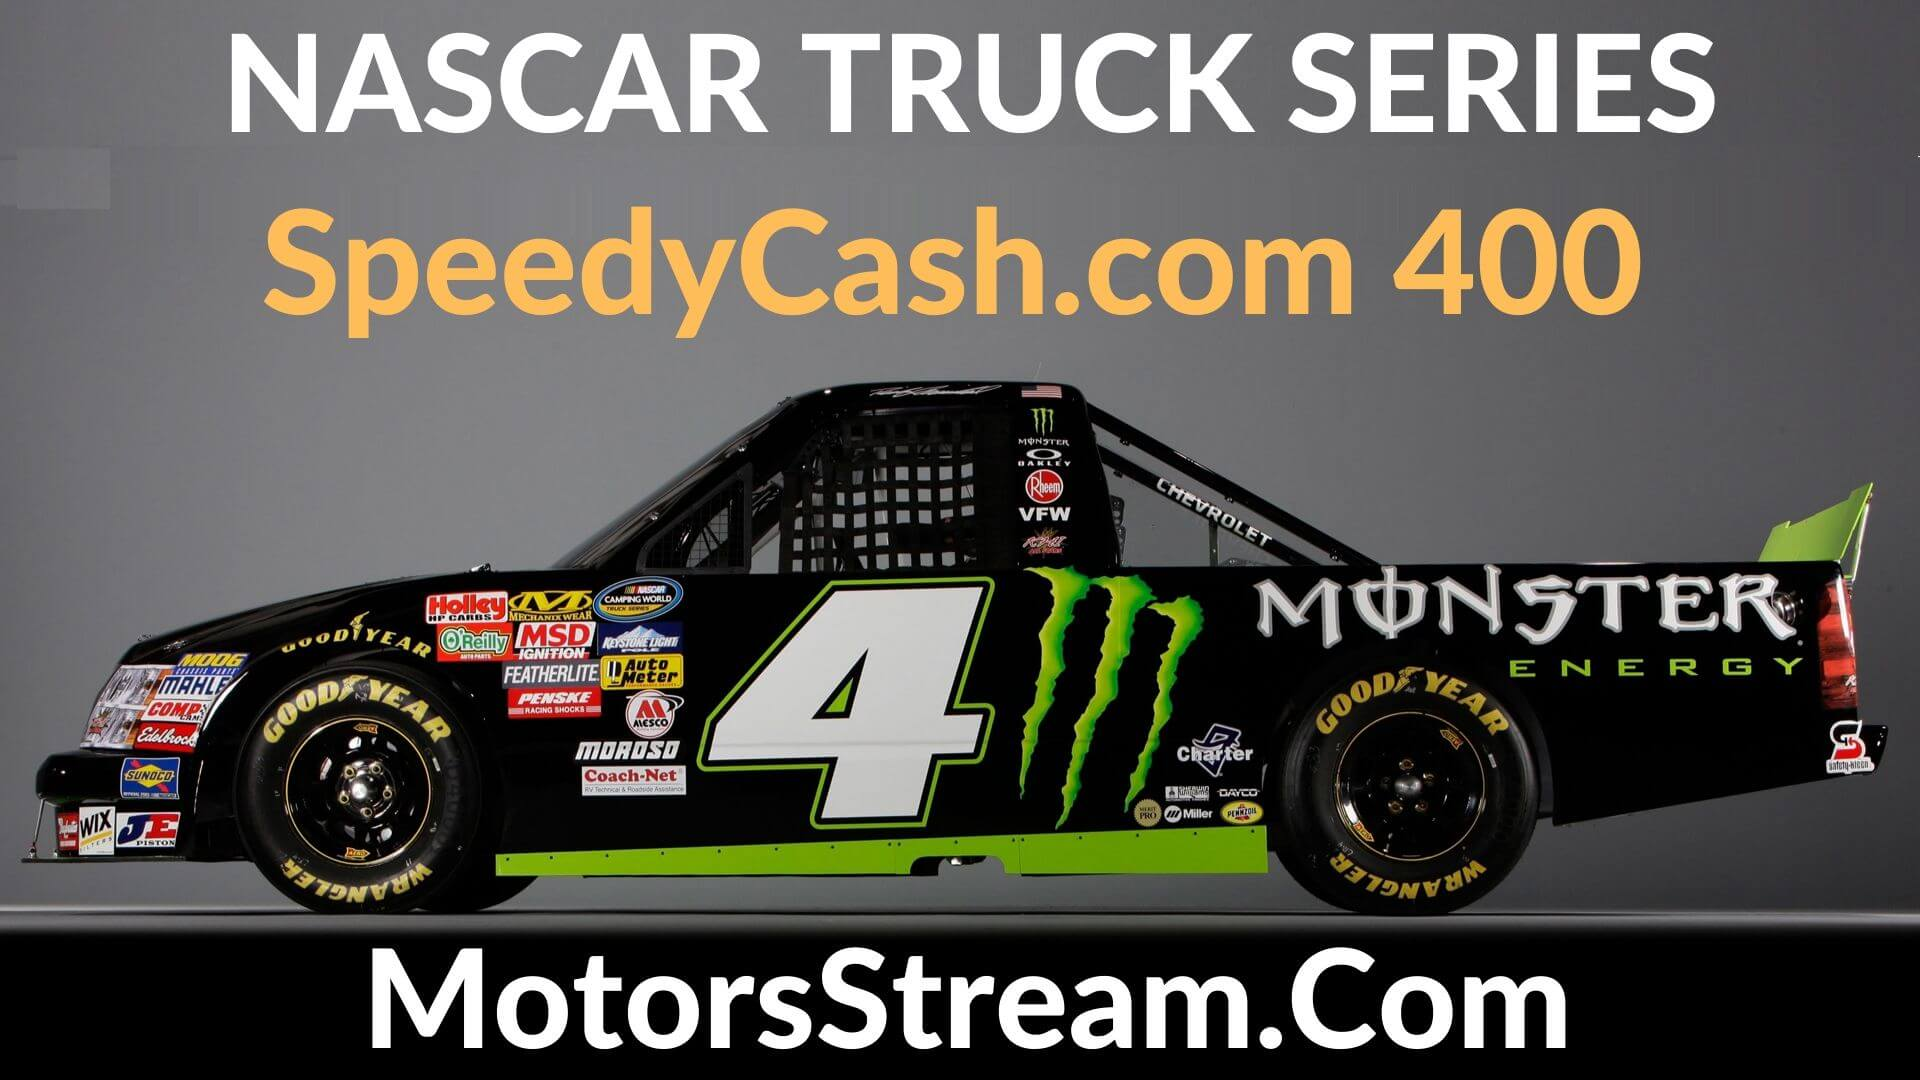 SpeedyCash.com 400 Live Stream | Nascar Truck Series 2020